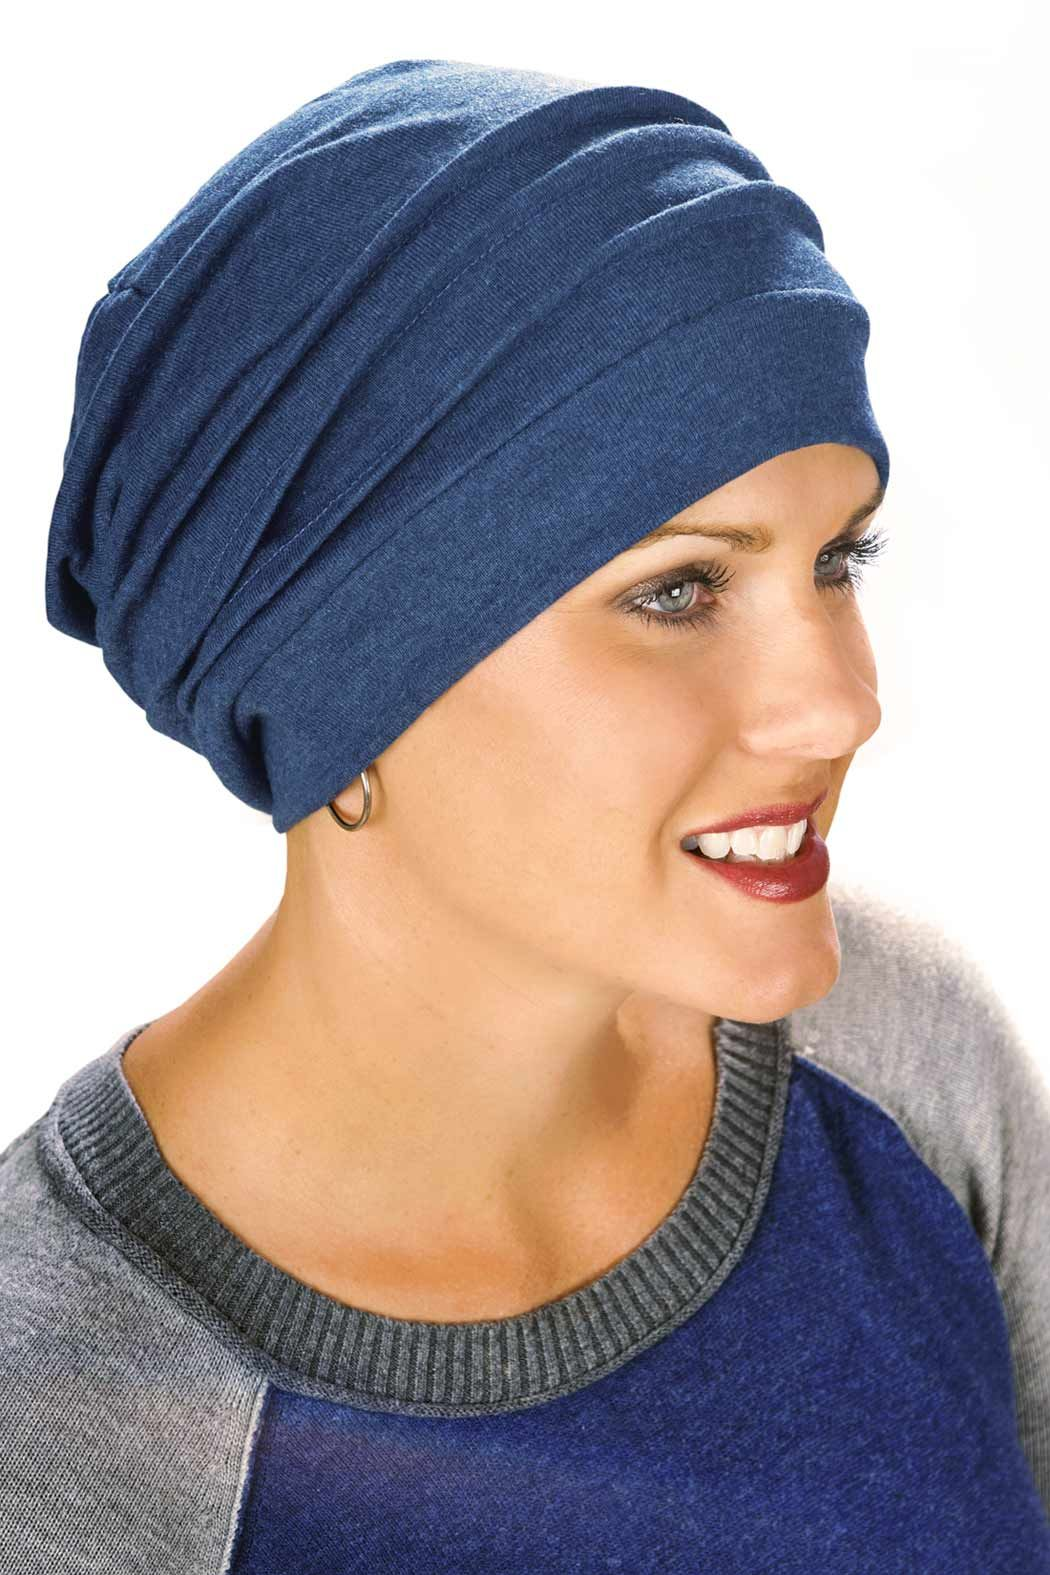 Chemo Hats Hats for Cancer Patients Slouchy Women Hat Beanie Headwear Head Covering Chemo Beanies Chemo Headwear Cotton Hat